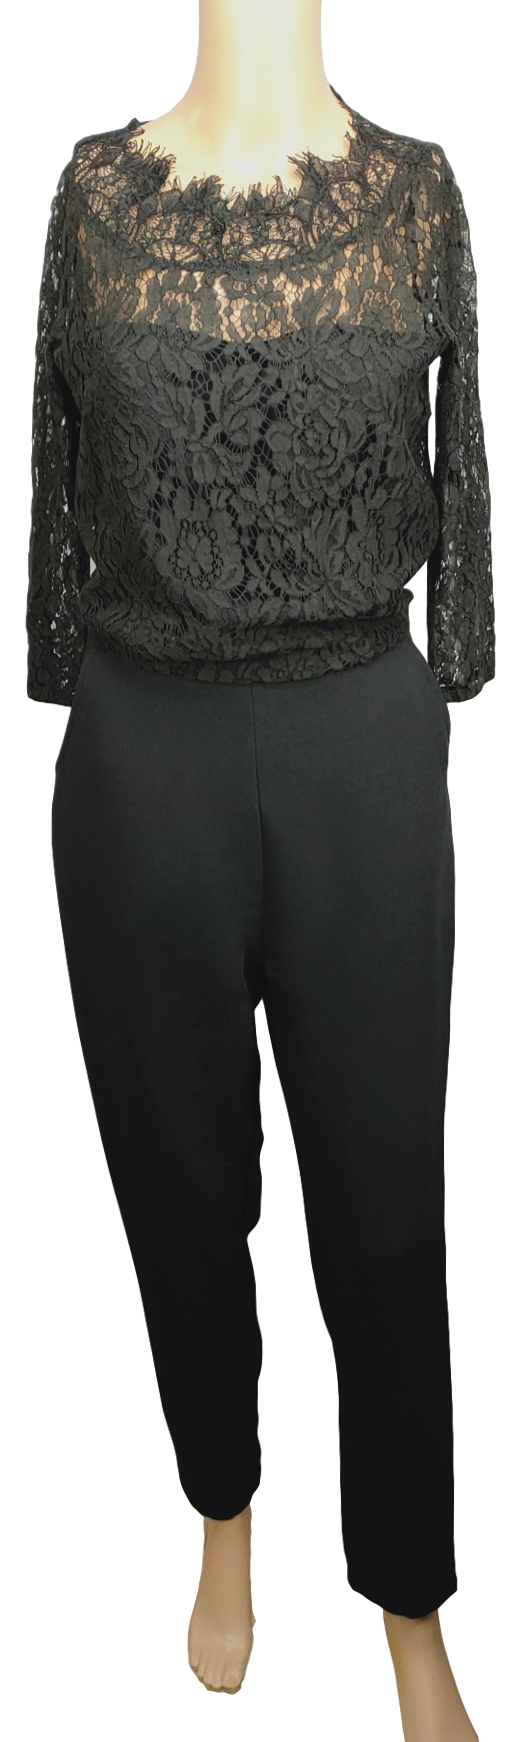 Combi-pantalon Andy & Lucy -Taille S